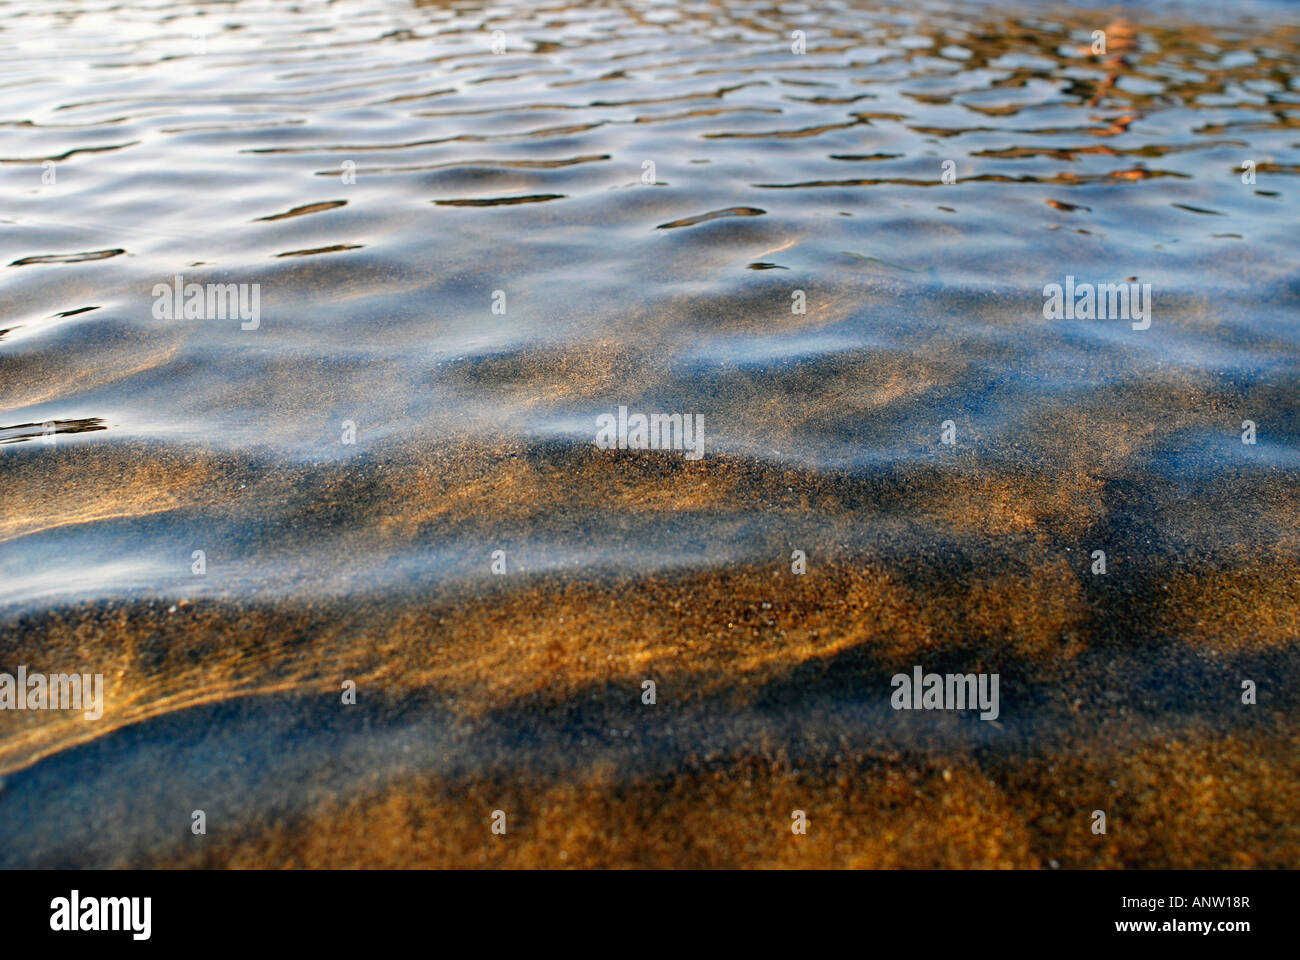 Ripples on calm shallow sea water surface - Stock Image